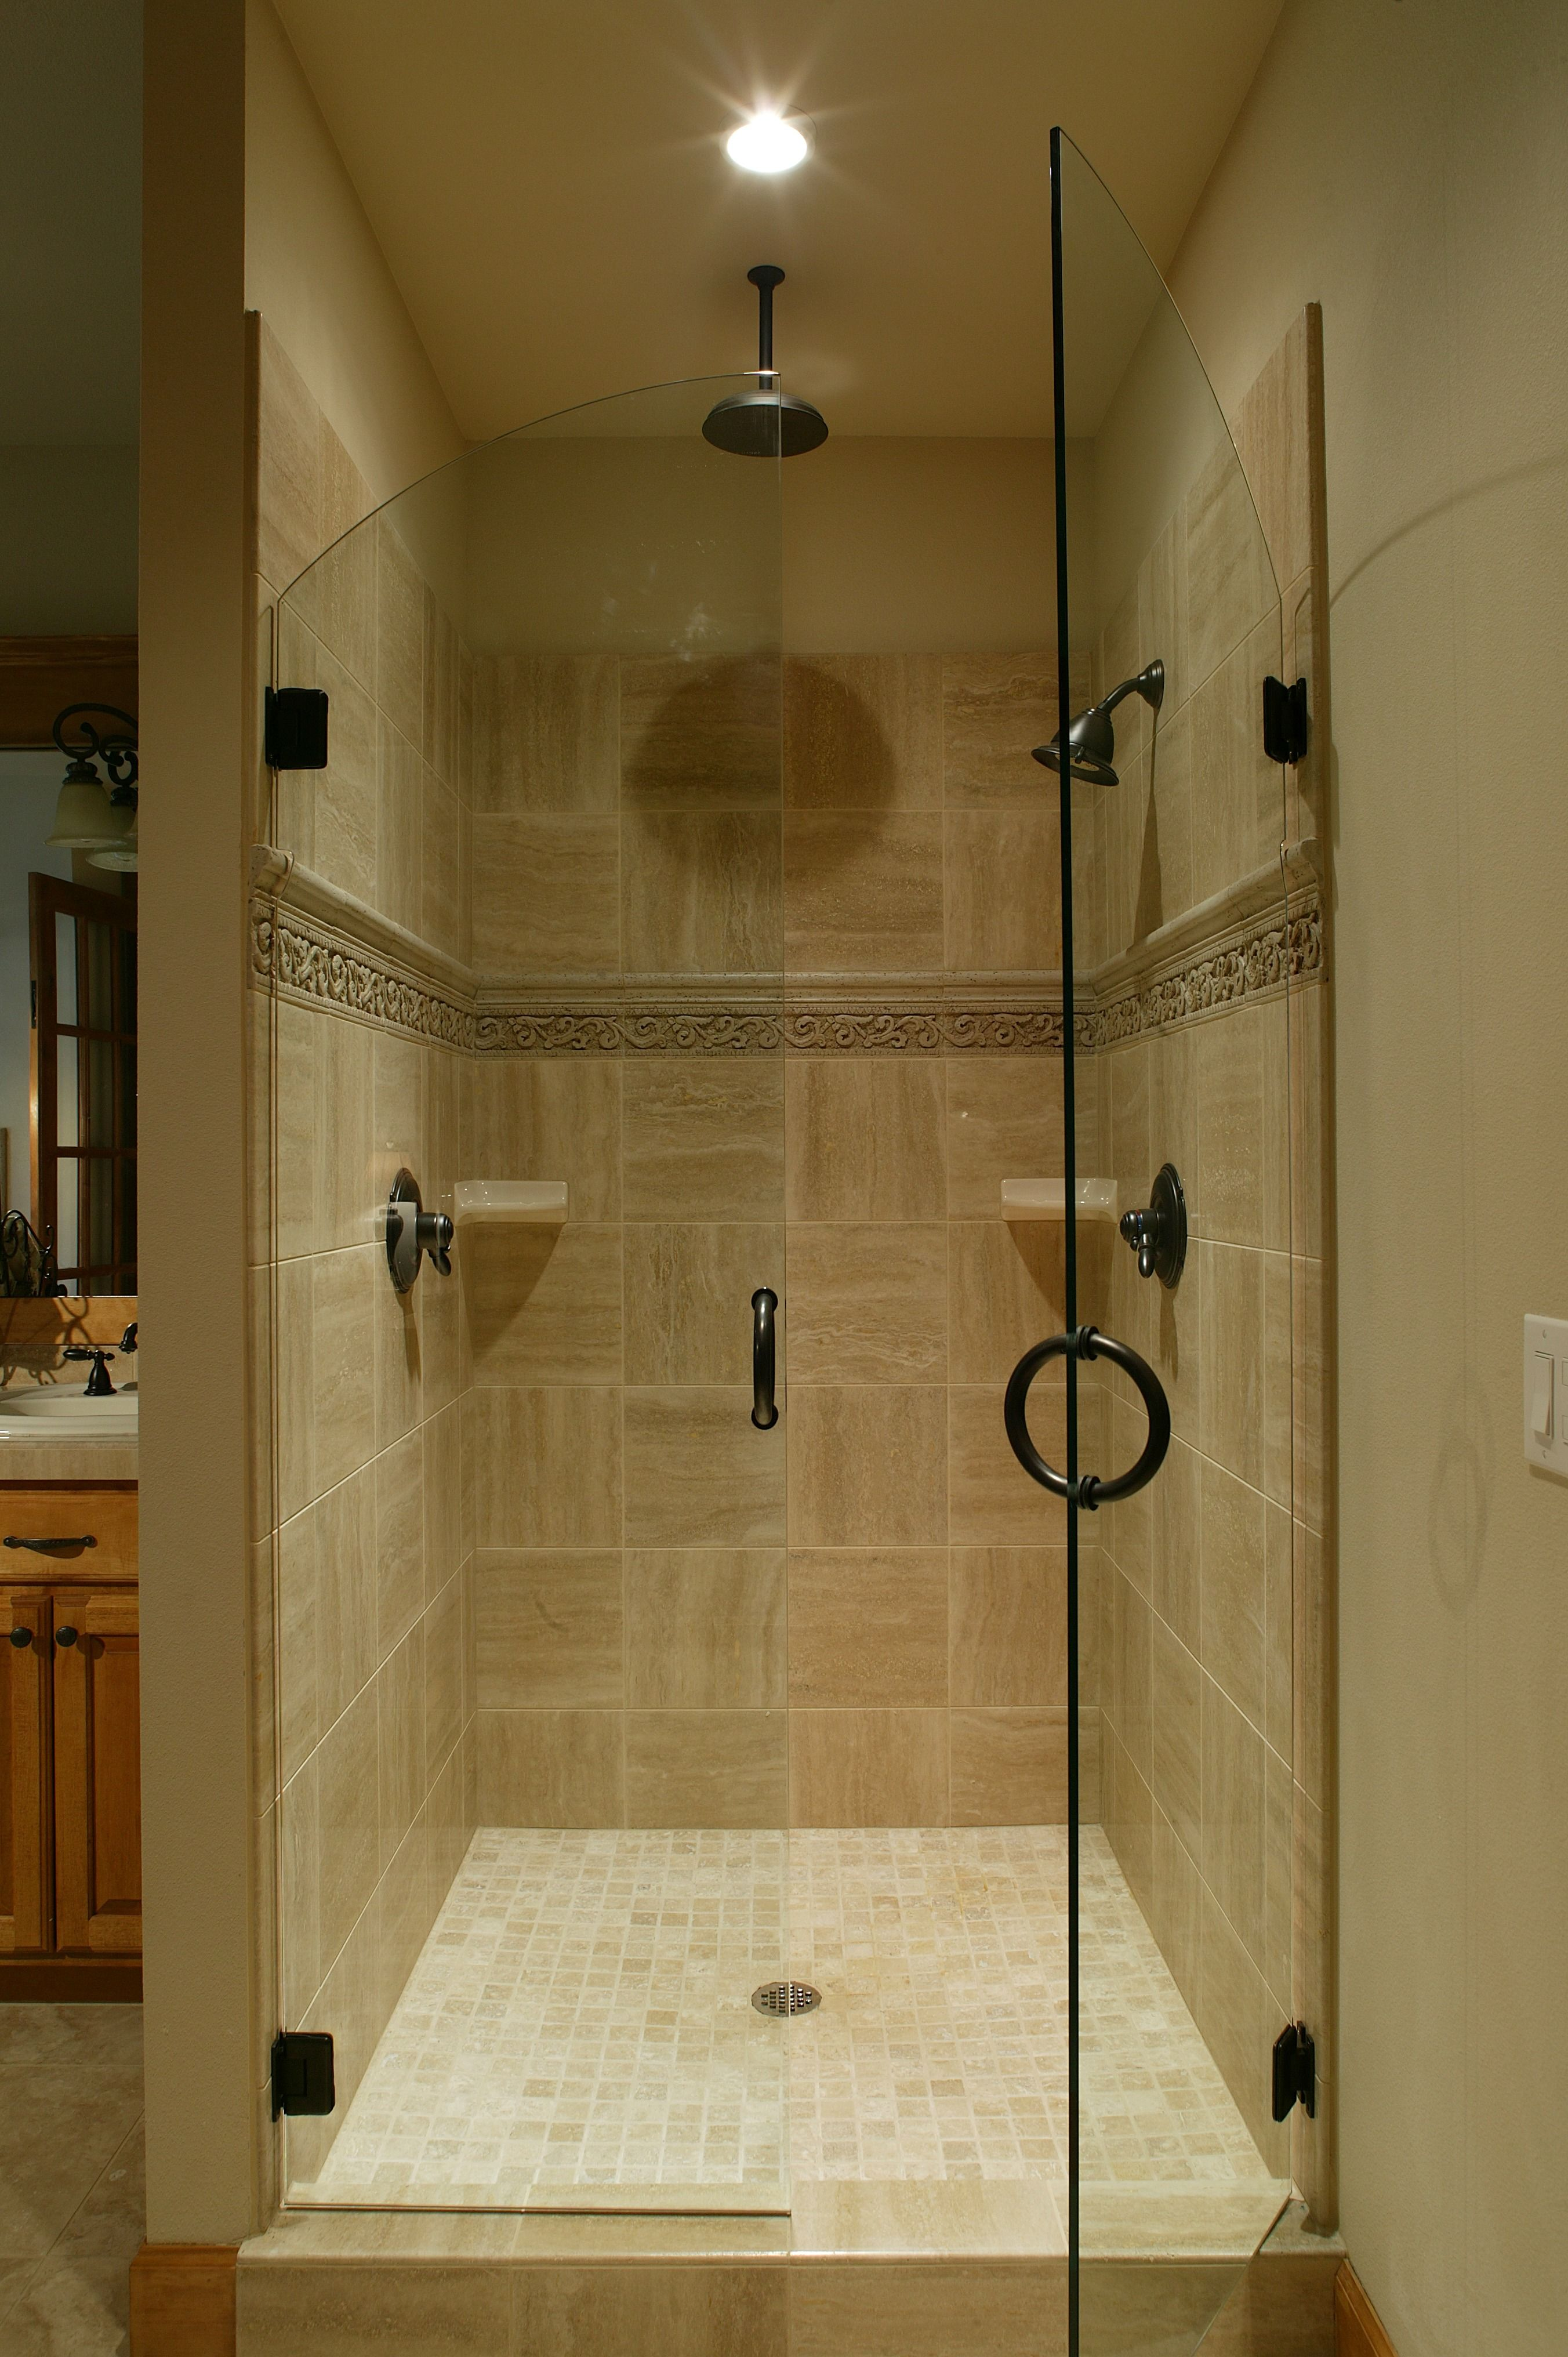 More ideas for placement | Bathroom Ideas | Pinterest | Diy ...